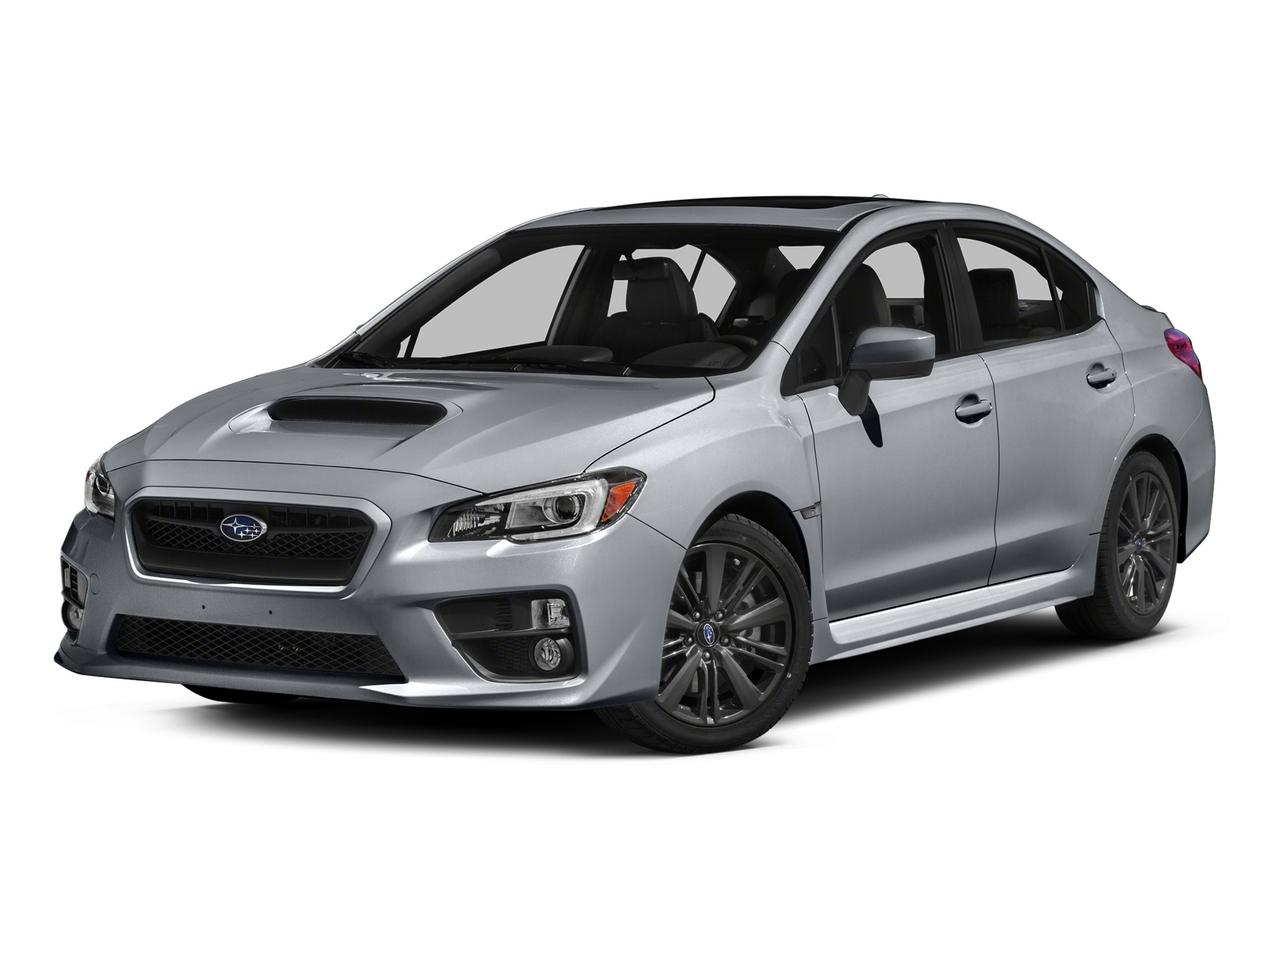 2015 Subaru WRX Vehicle Photo in Tucson, AZ 85712